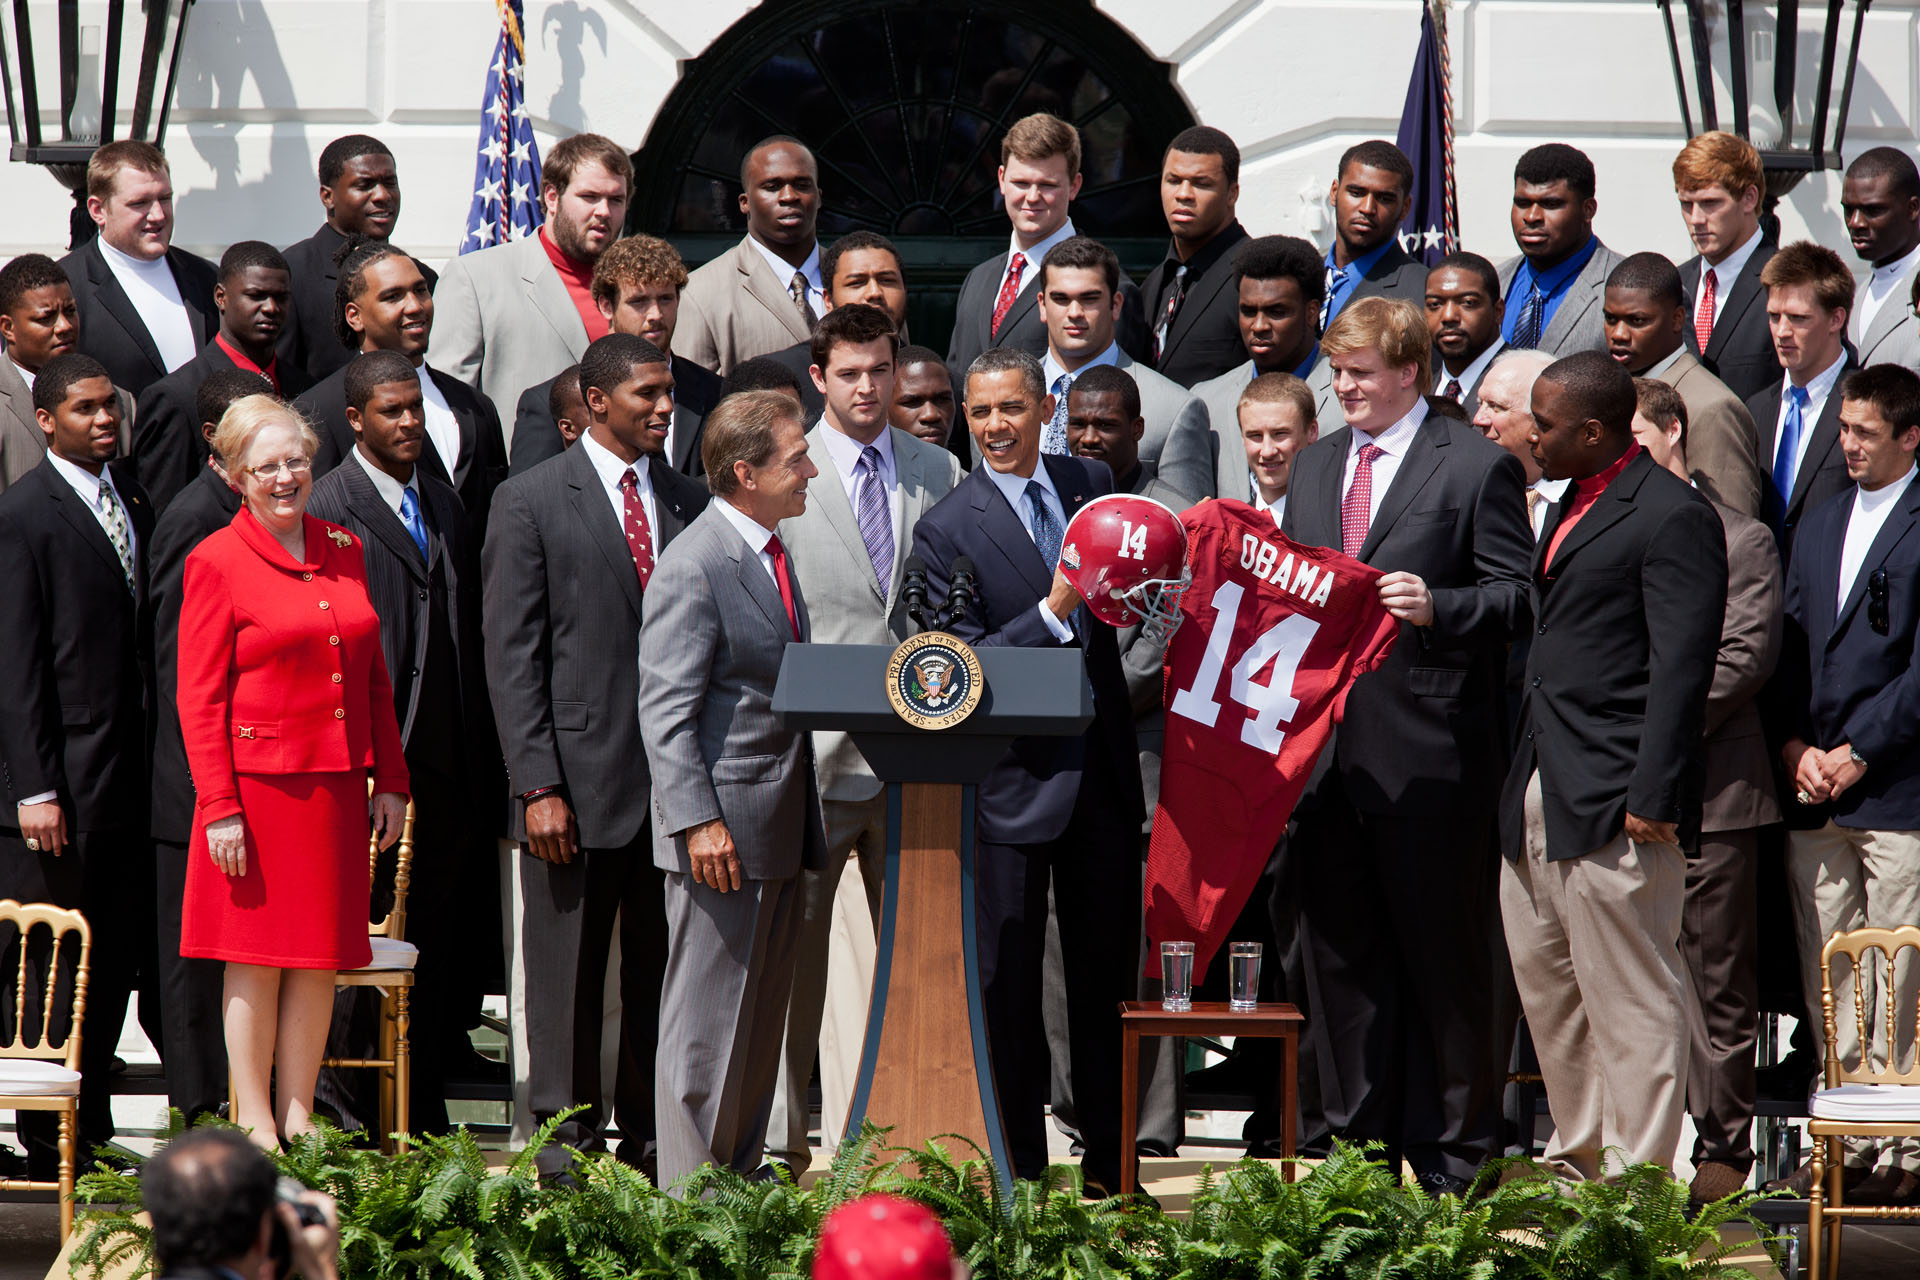 University of Alabama present President Obama with a jersey and helmet